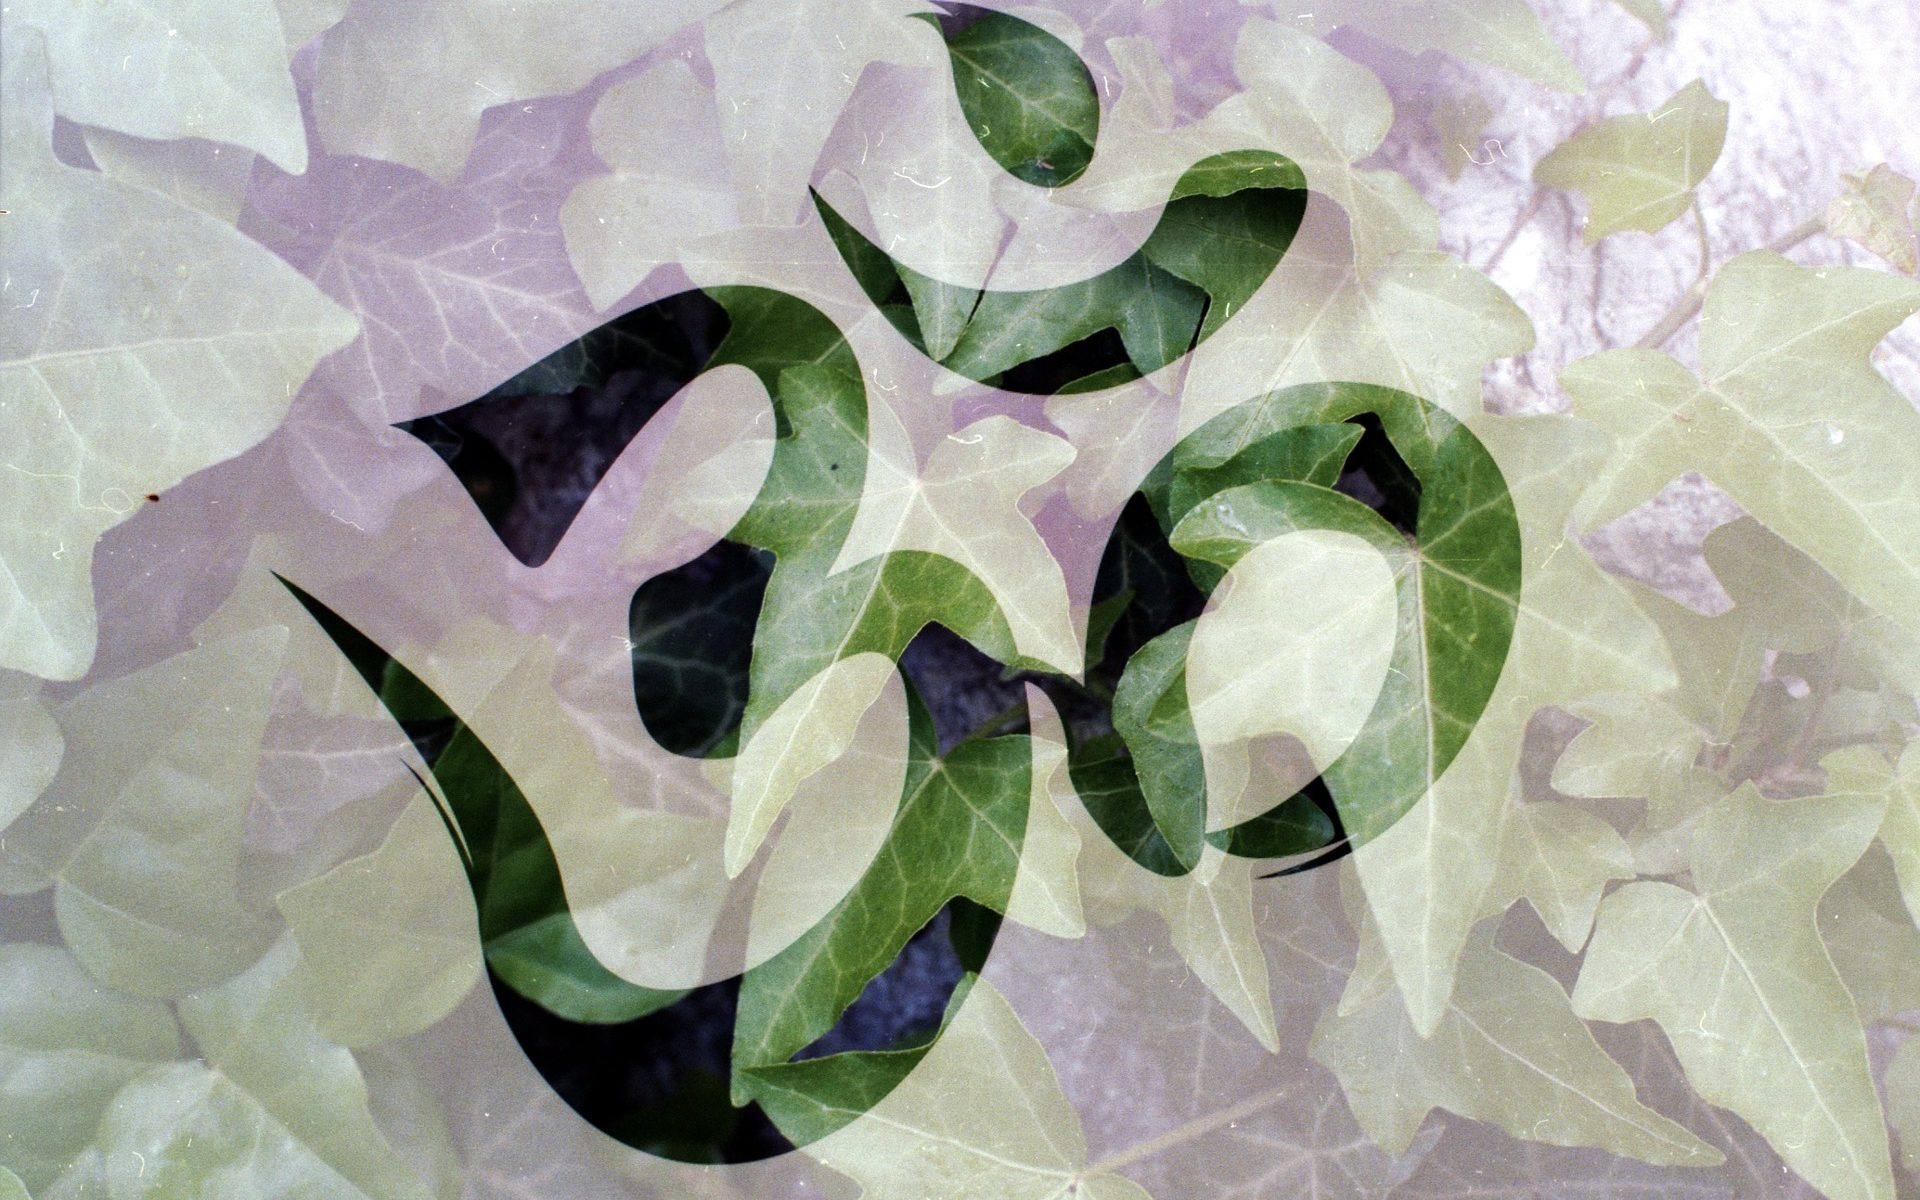 OM with leaves